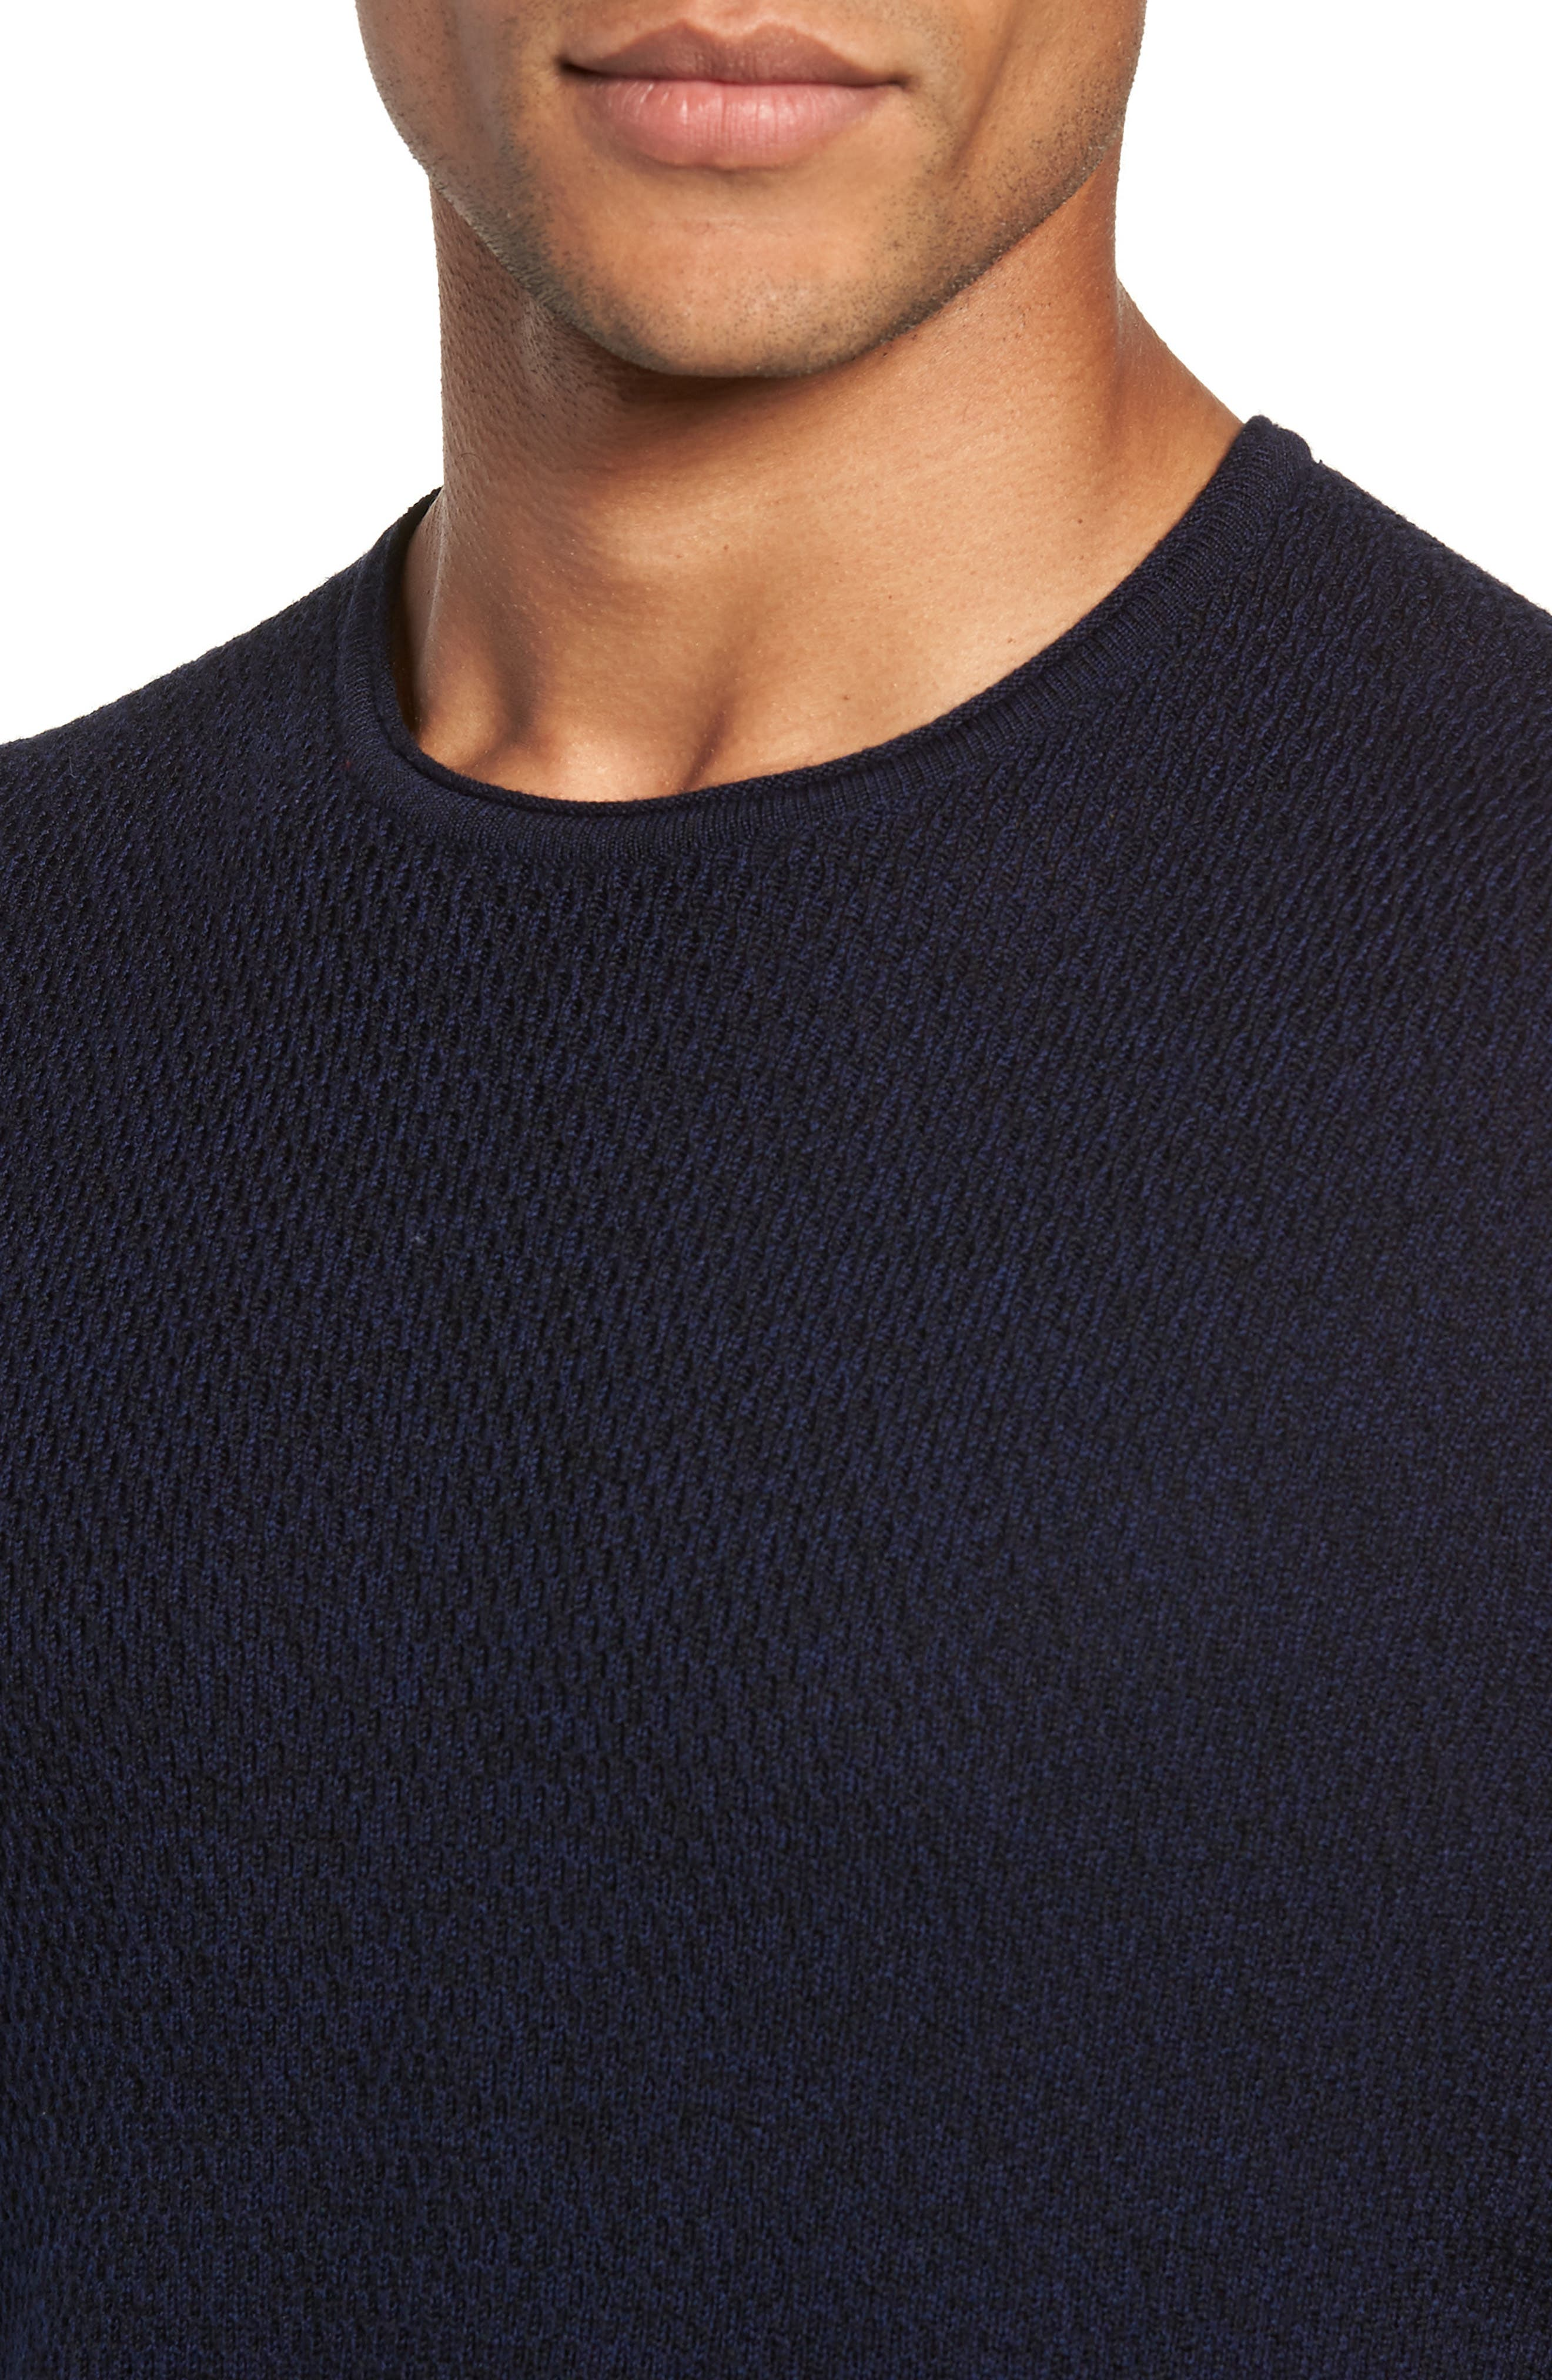 Gregory Wool Blend Crewneck Sweater,                             Alternate thumbnail 4, color,                             NAVY